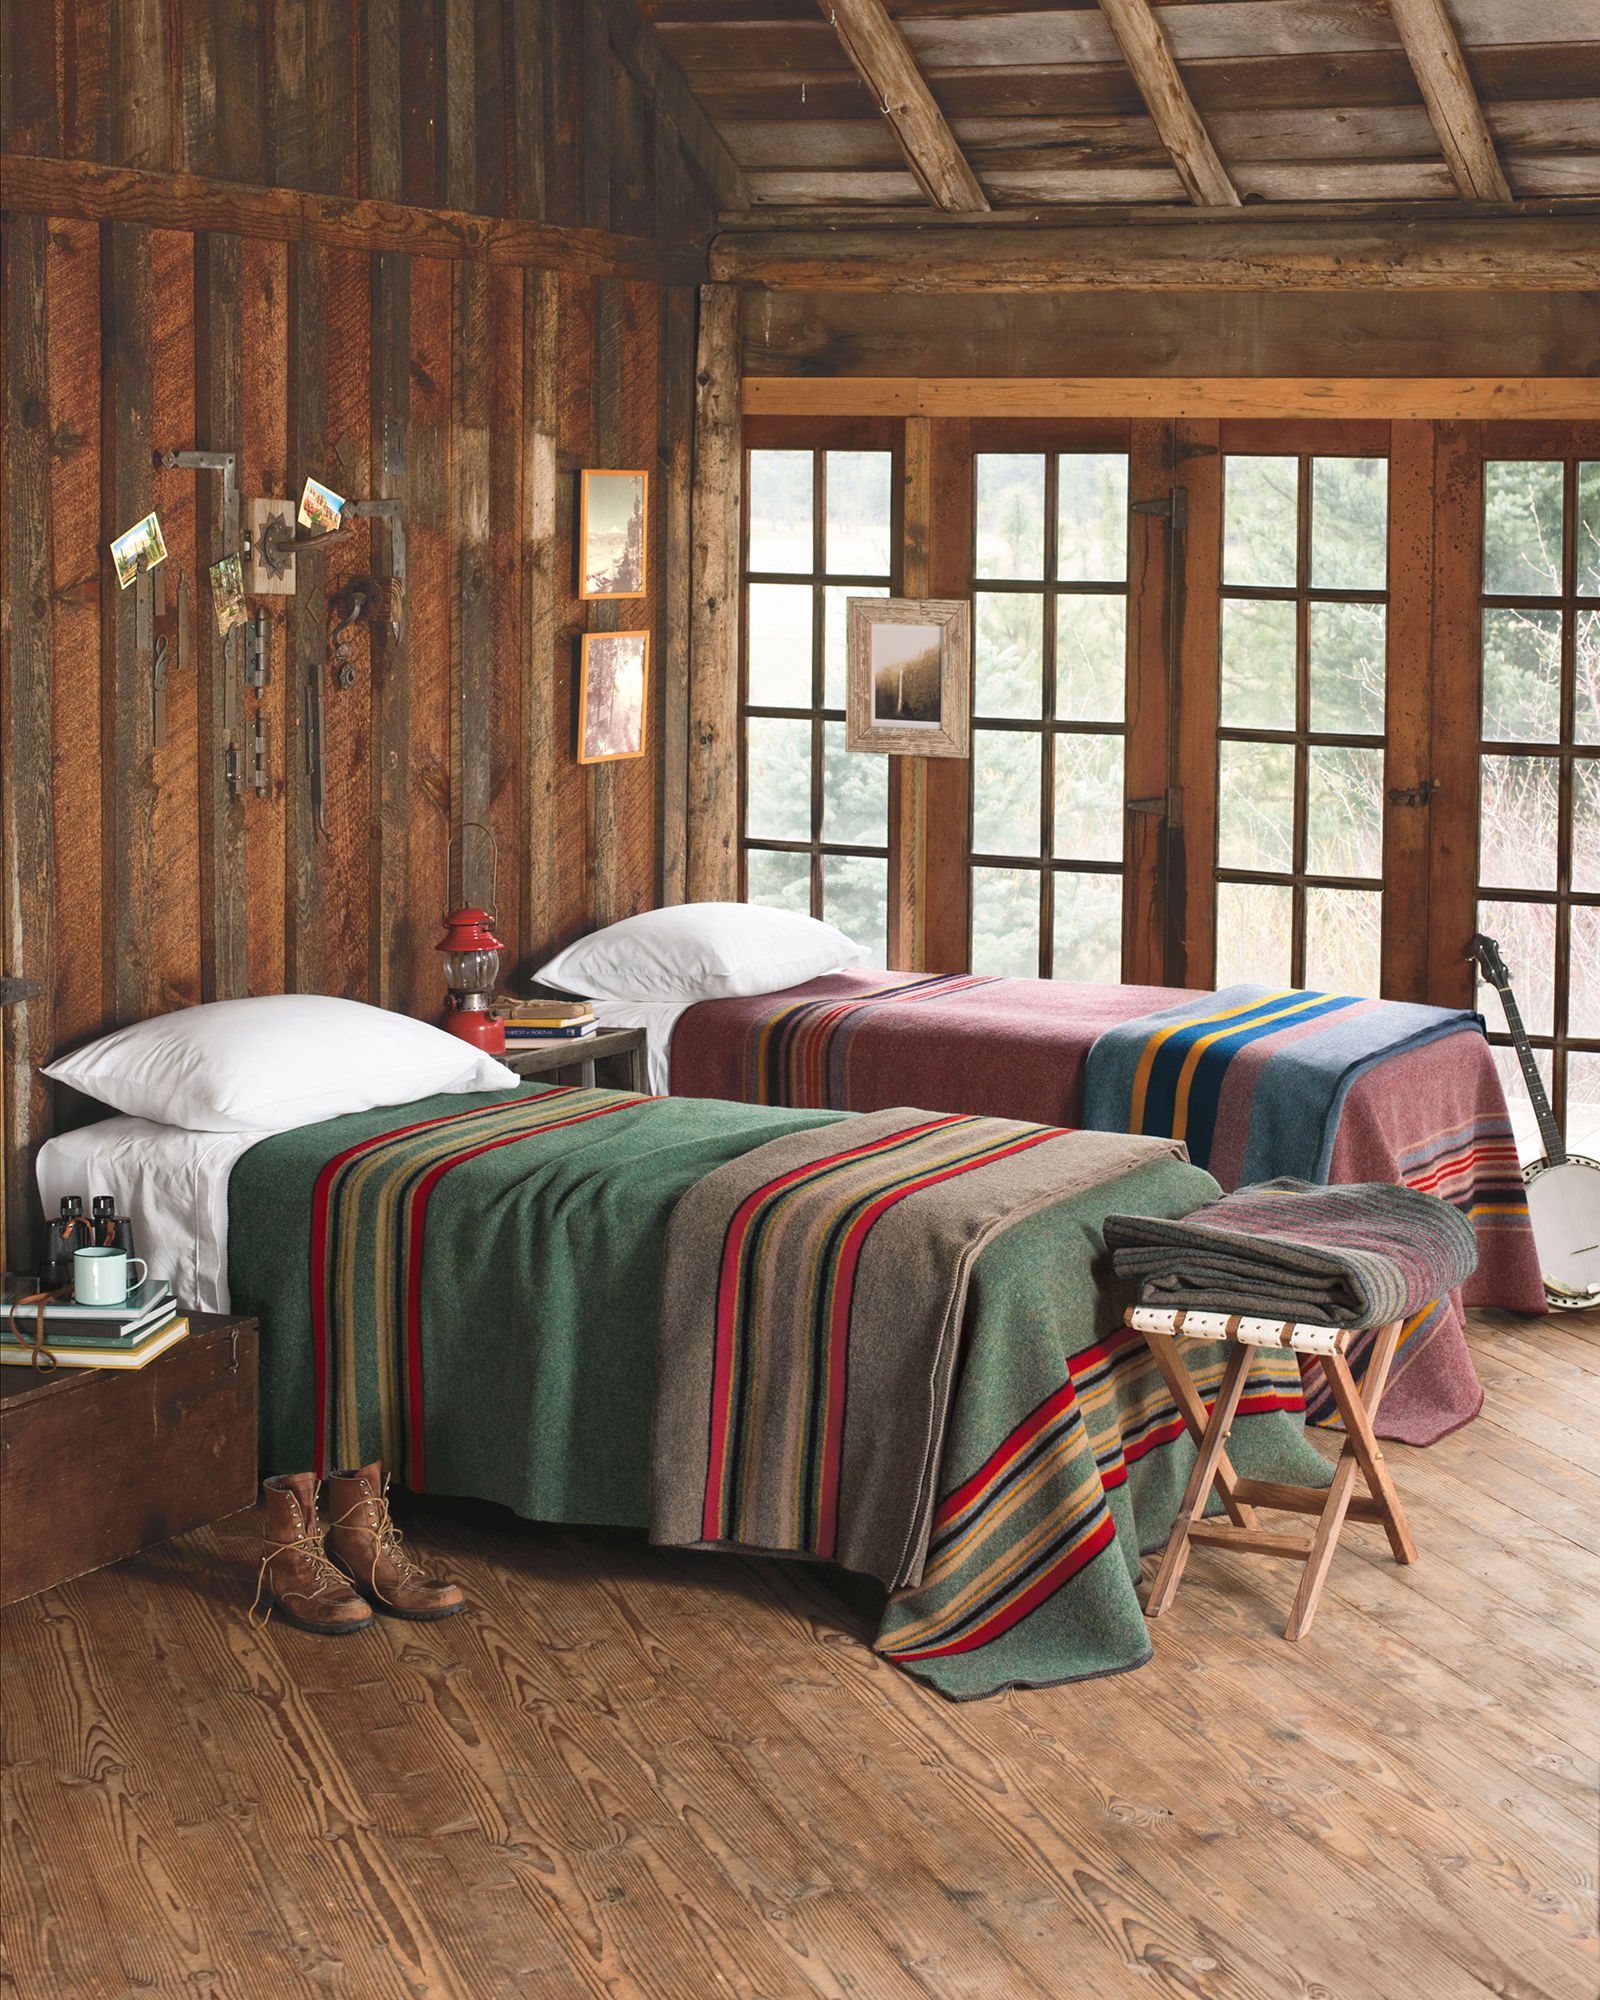 two beds in a log building by a window. Beds are covered with Pendleton Yakima Camp blankets, one green with stripes, one red with stripes.